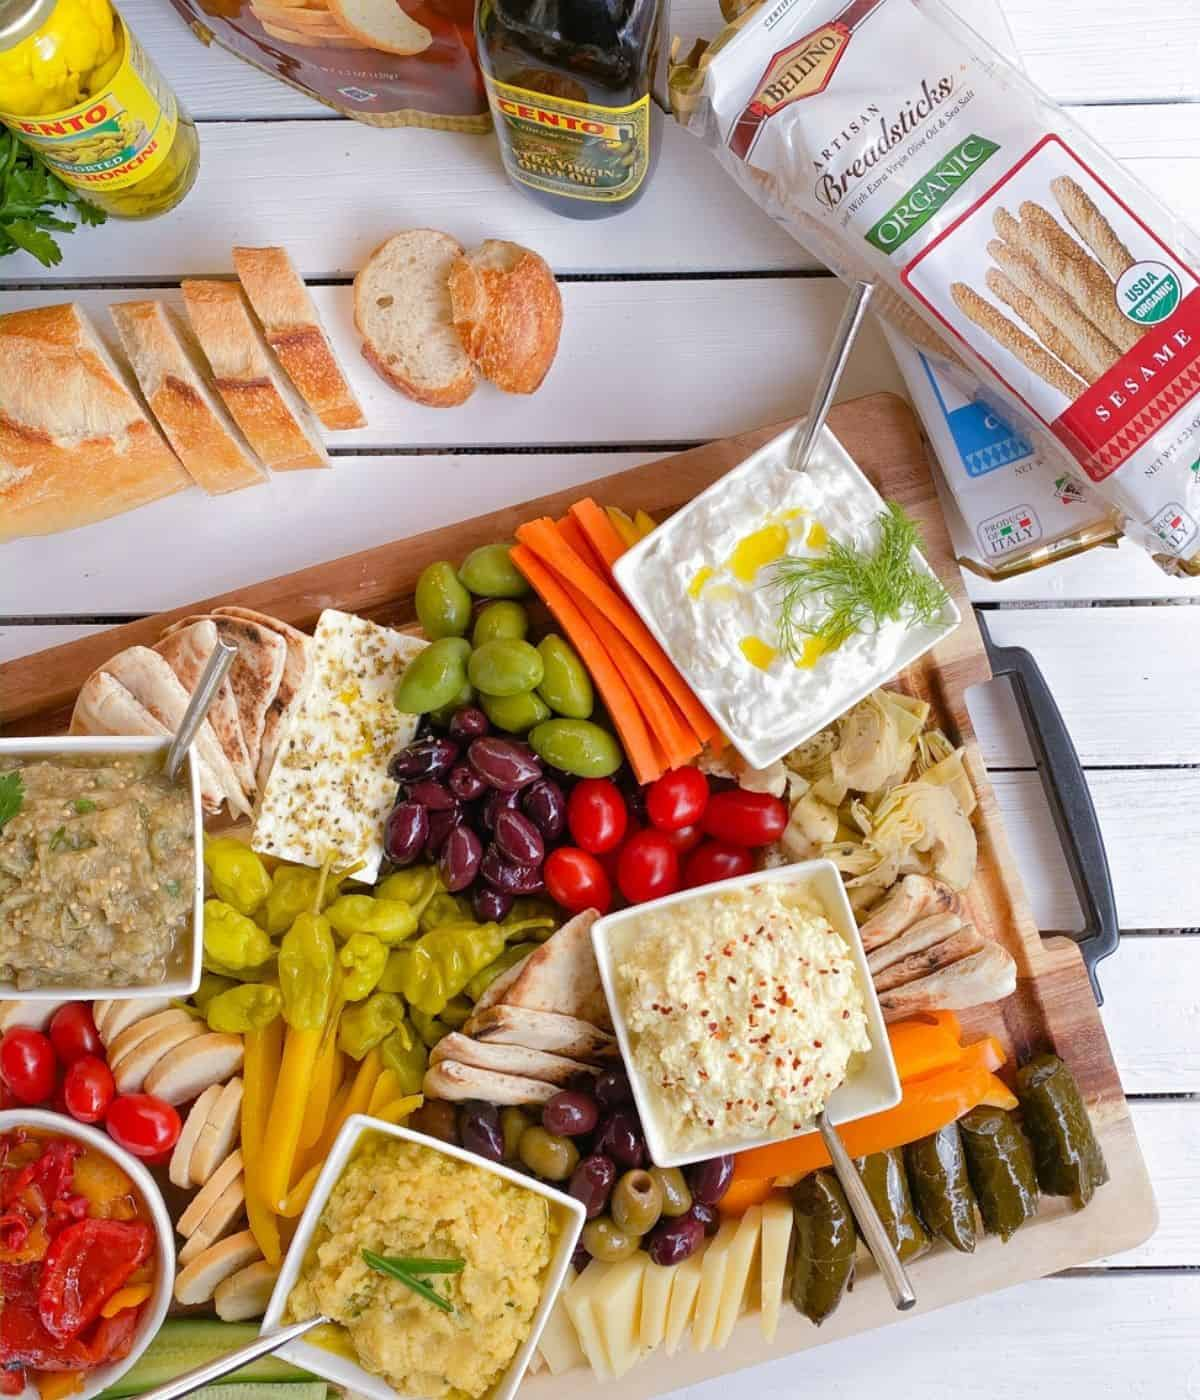 Greek mezze appetizers on a wooden cutting board with spreads and dips.